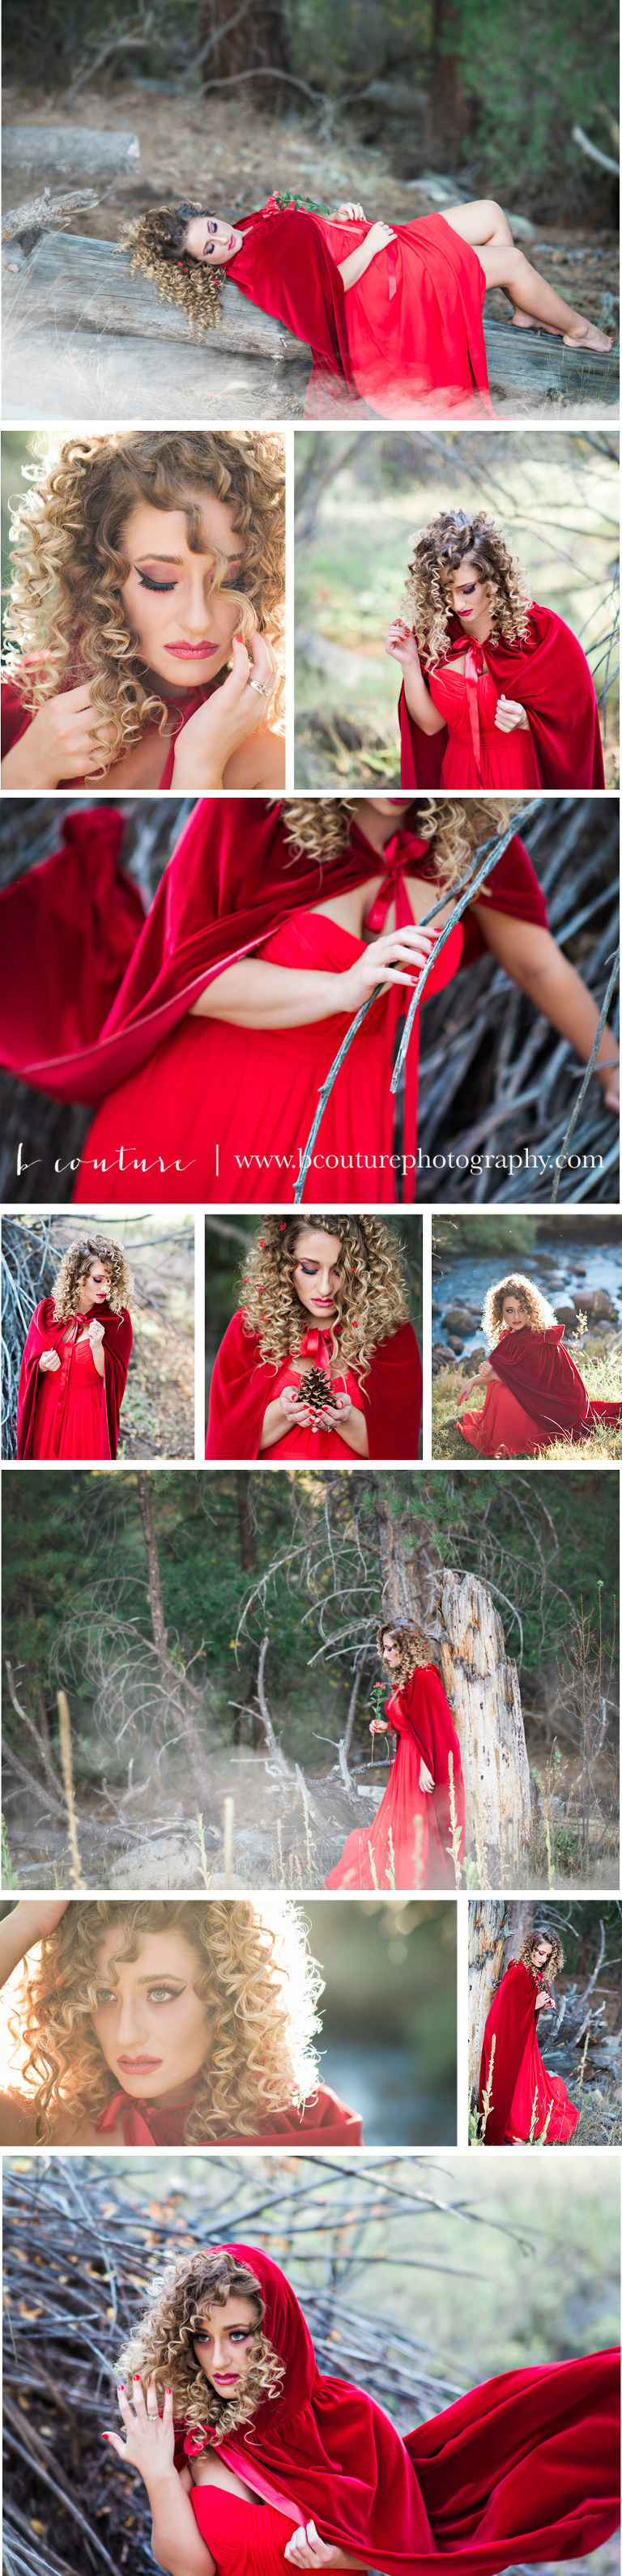 RED RIDING HOOD BLOG BOARD-2